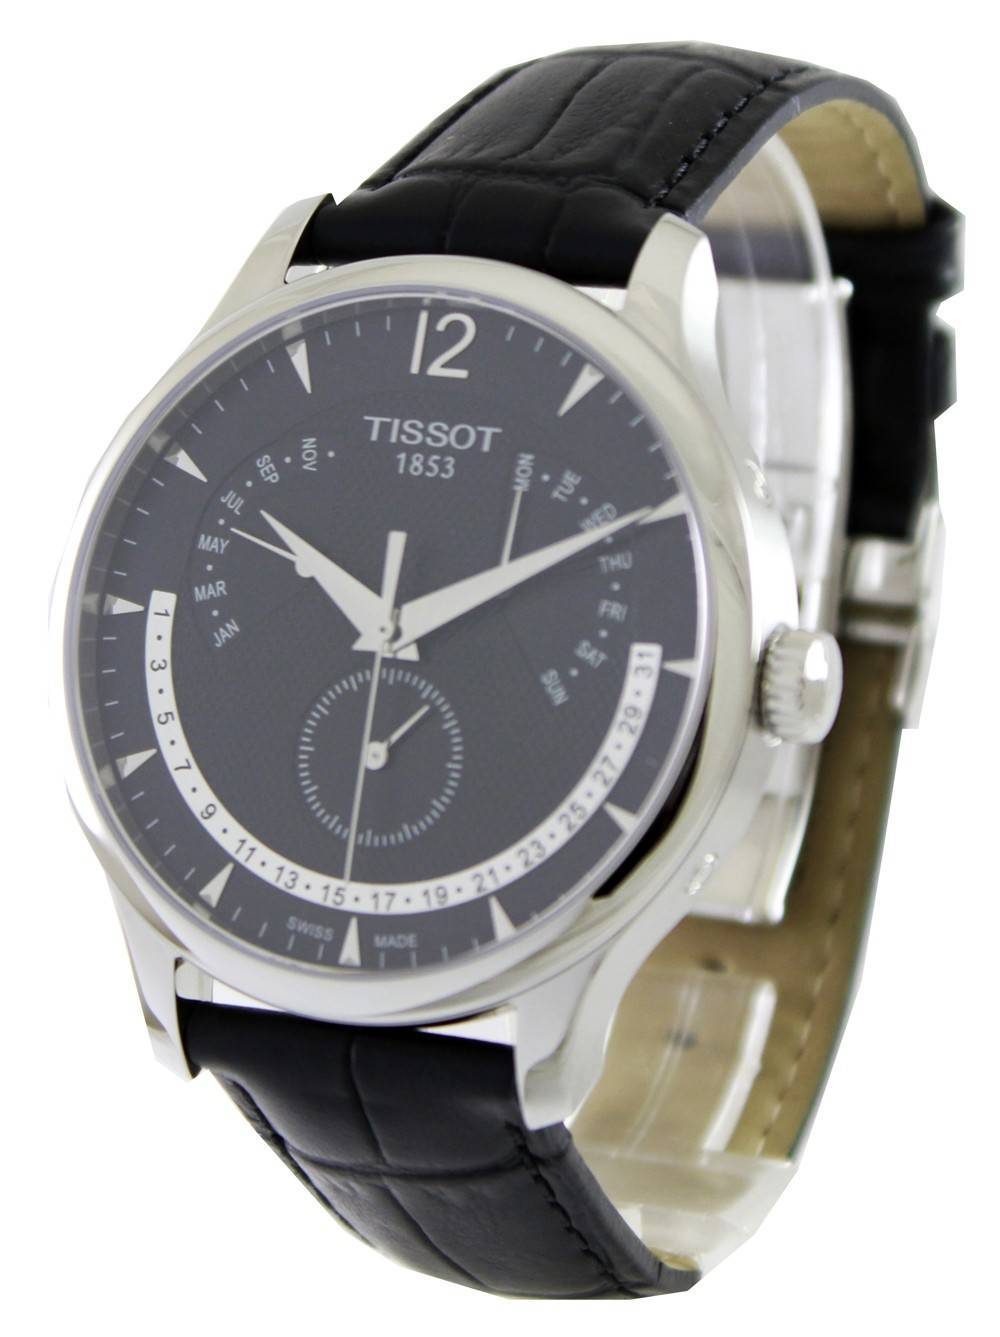 Tradition Perpetual Calender T063.637.16.057.00 T0636371605700 Men's Watch